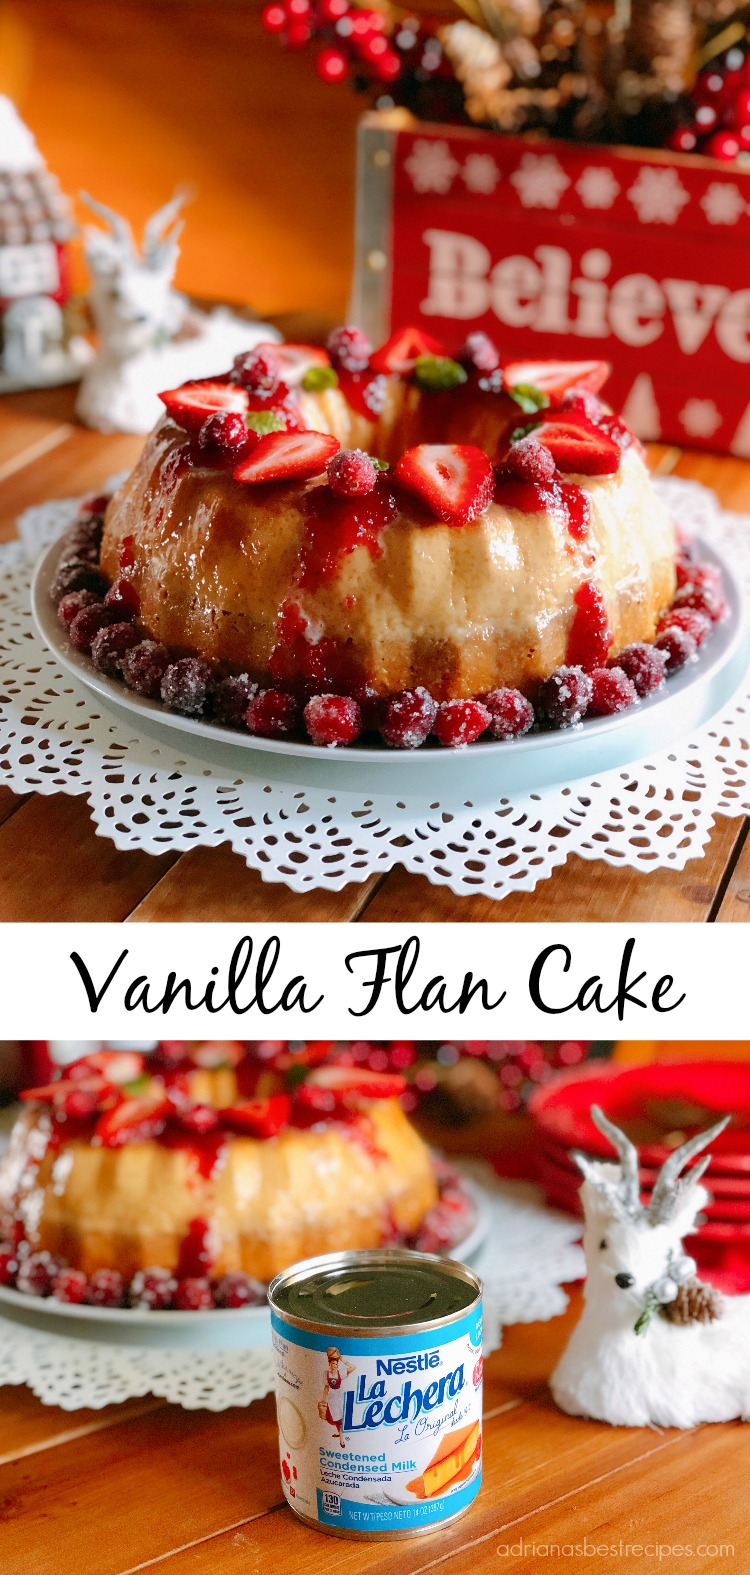 Enjoy a Vanilla Flan Cake for the holidays while creating special memories. Use authentic ingredients such as LECHERA® condensed milk available at Publix. I have used my mom's classic recipe as the inspiration to create a modern twist on a dessert that celebrates the flavors of the season adding to the flan cake a sauce made with homemade strawberry cranberry jam and using vanilla cake instead of chocolate. This recipe is sponsored by NESTLÉ® LA LECHERA®  #MexicanCuisine #FlanCake